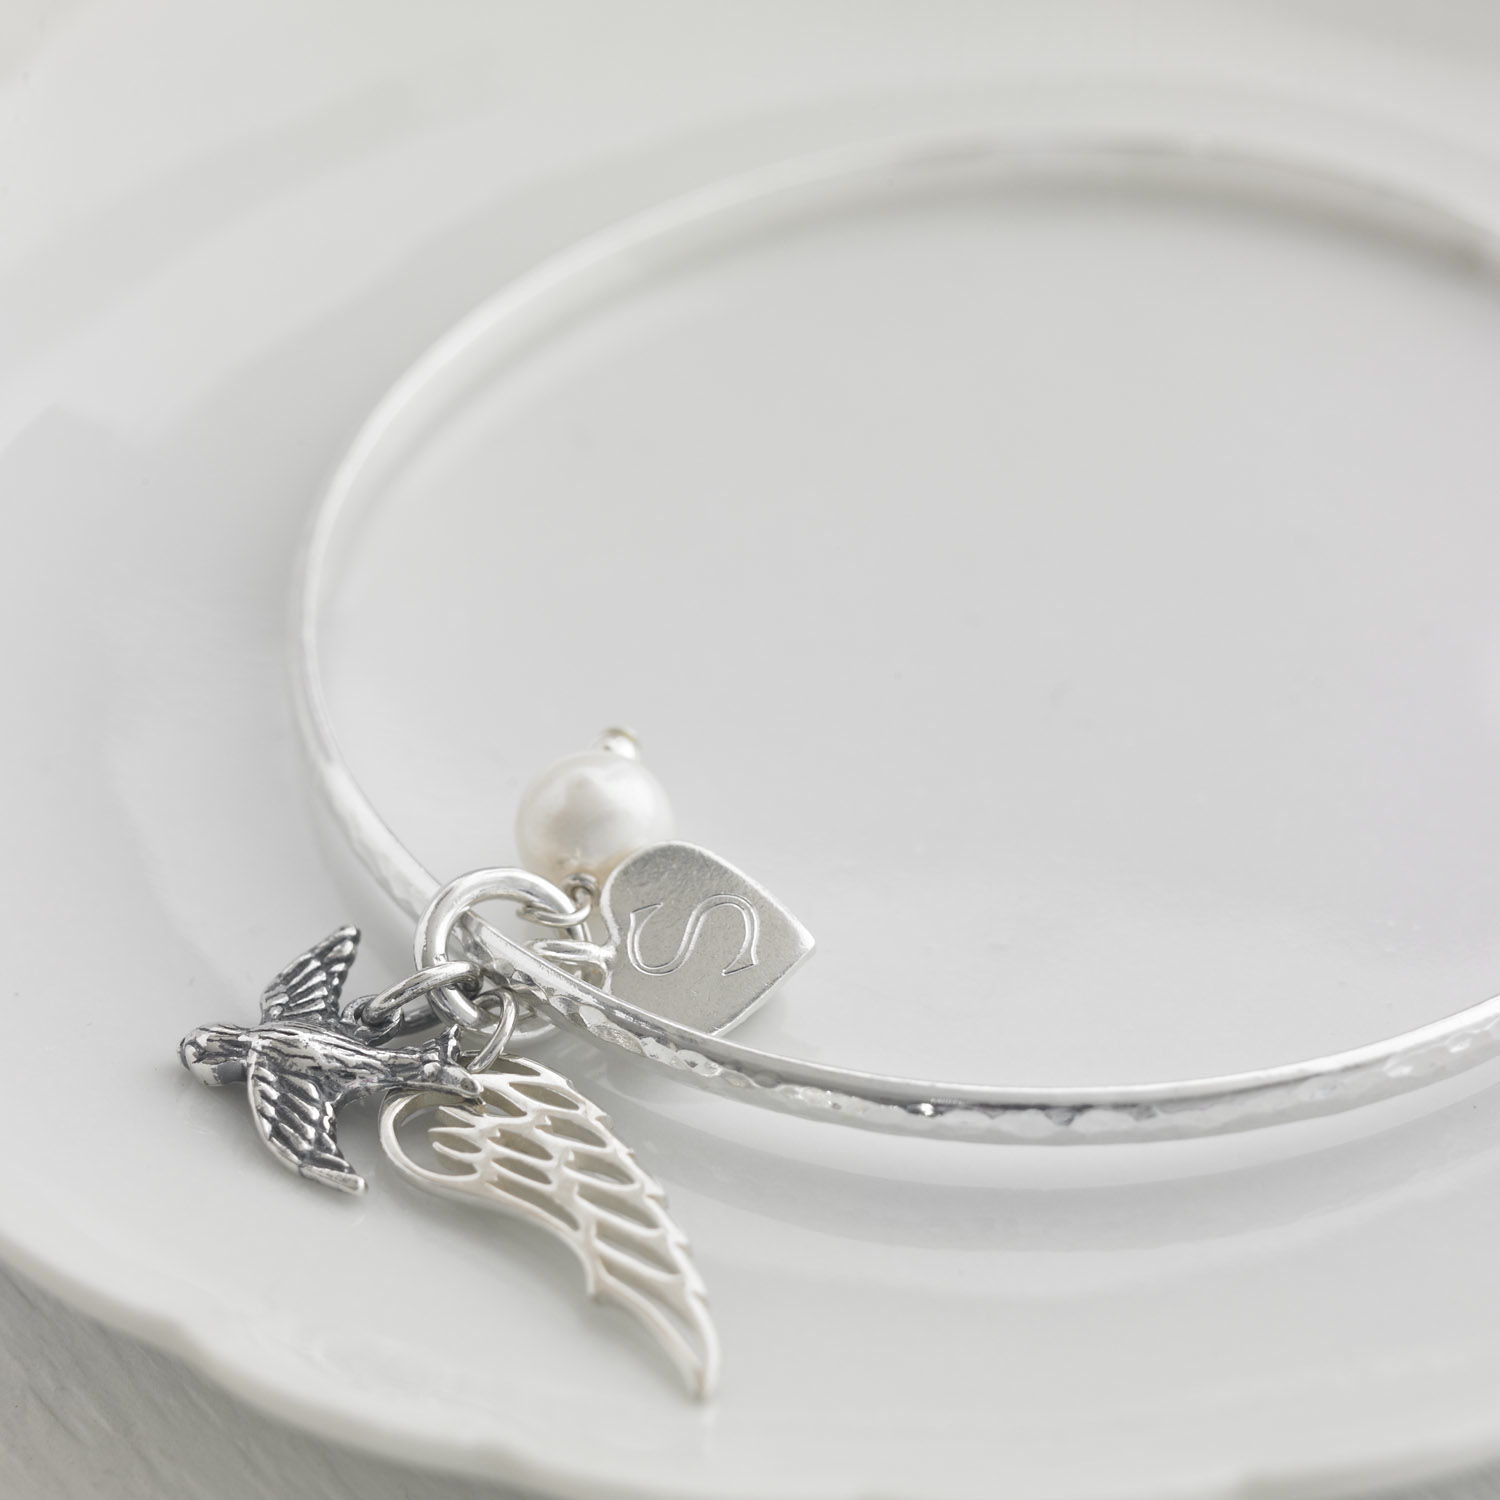 HBB02 Personalised Bluebird Bangle